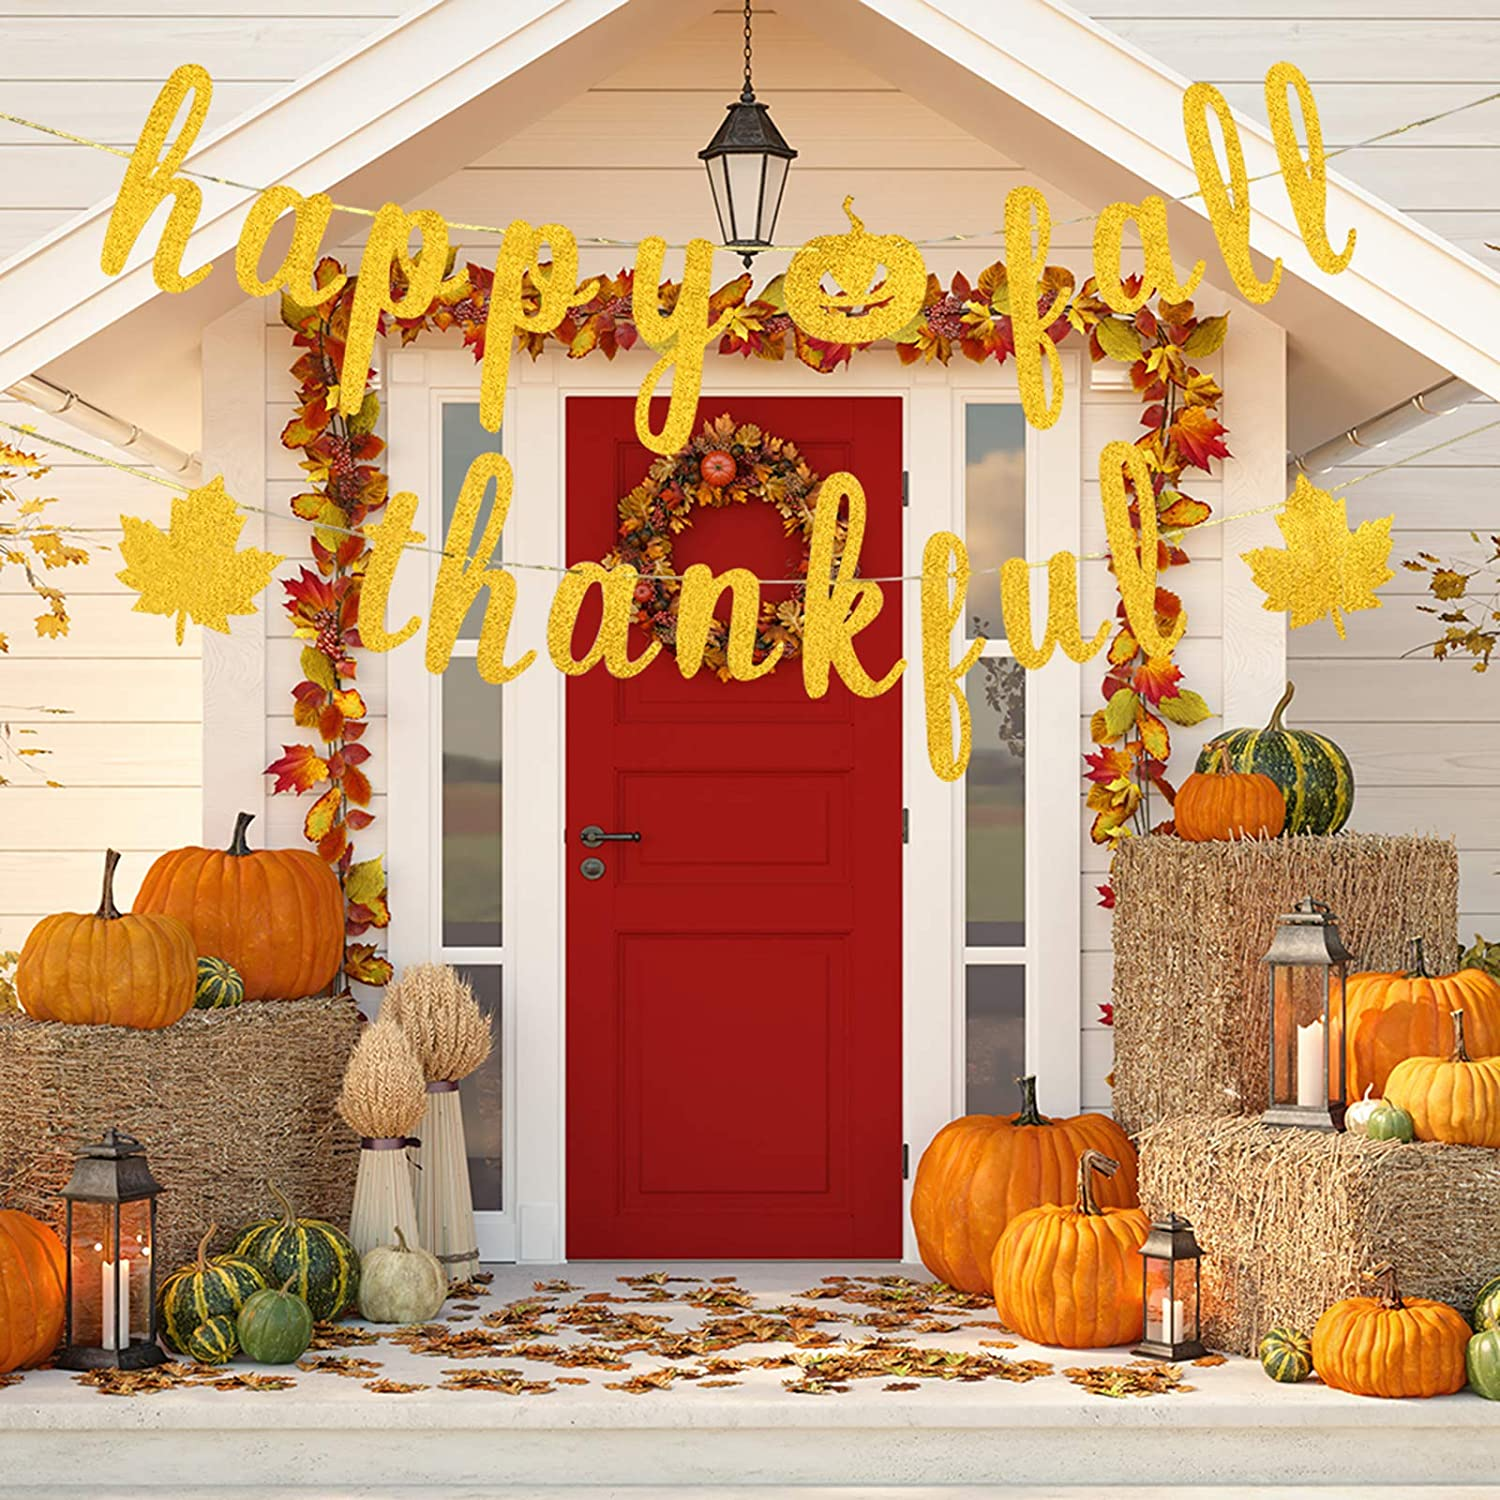 Autumn Harvest Theme Party Hanging Sign Thanksgiving Day Decorations Gold Happy Fall Thankful Banner